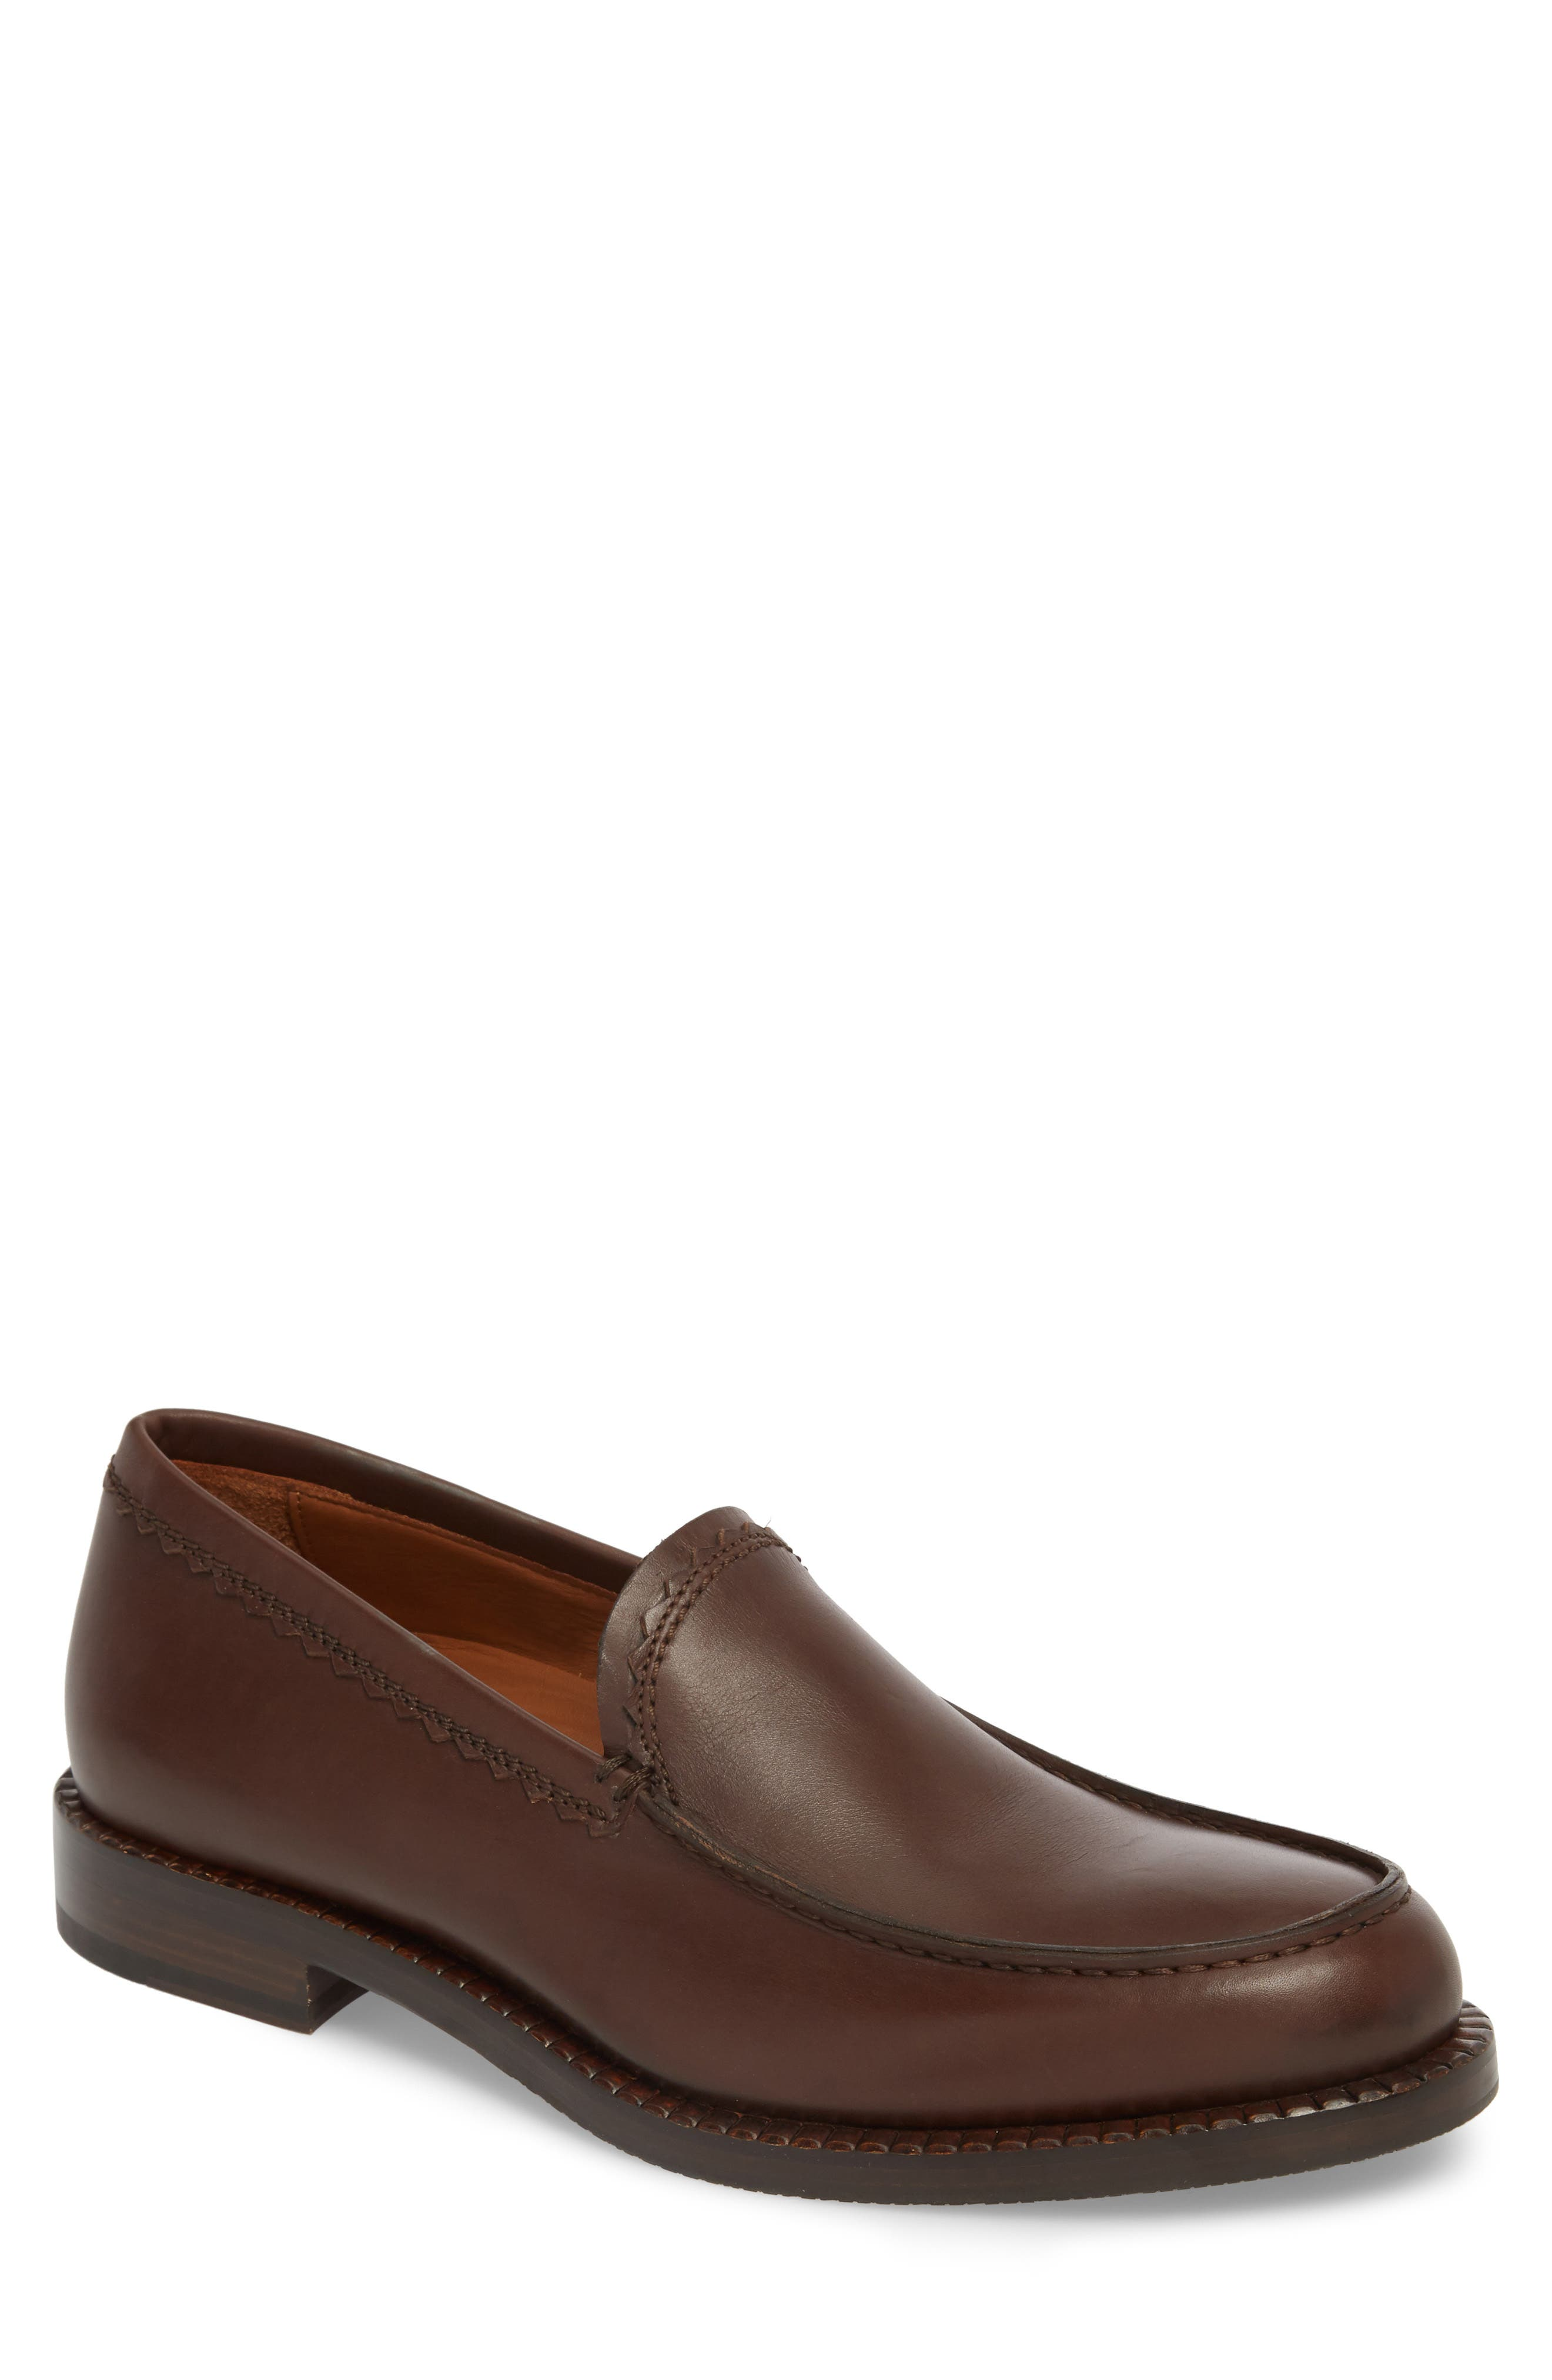 Jesse Weatherproof Moc Toe Loafer,                             Main thumbnail 1, color,                             Brown